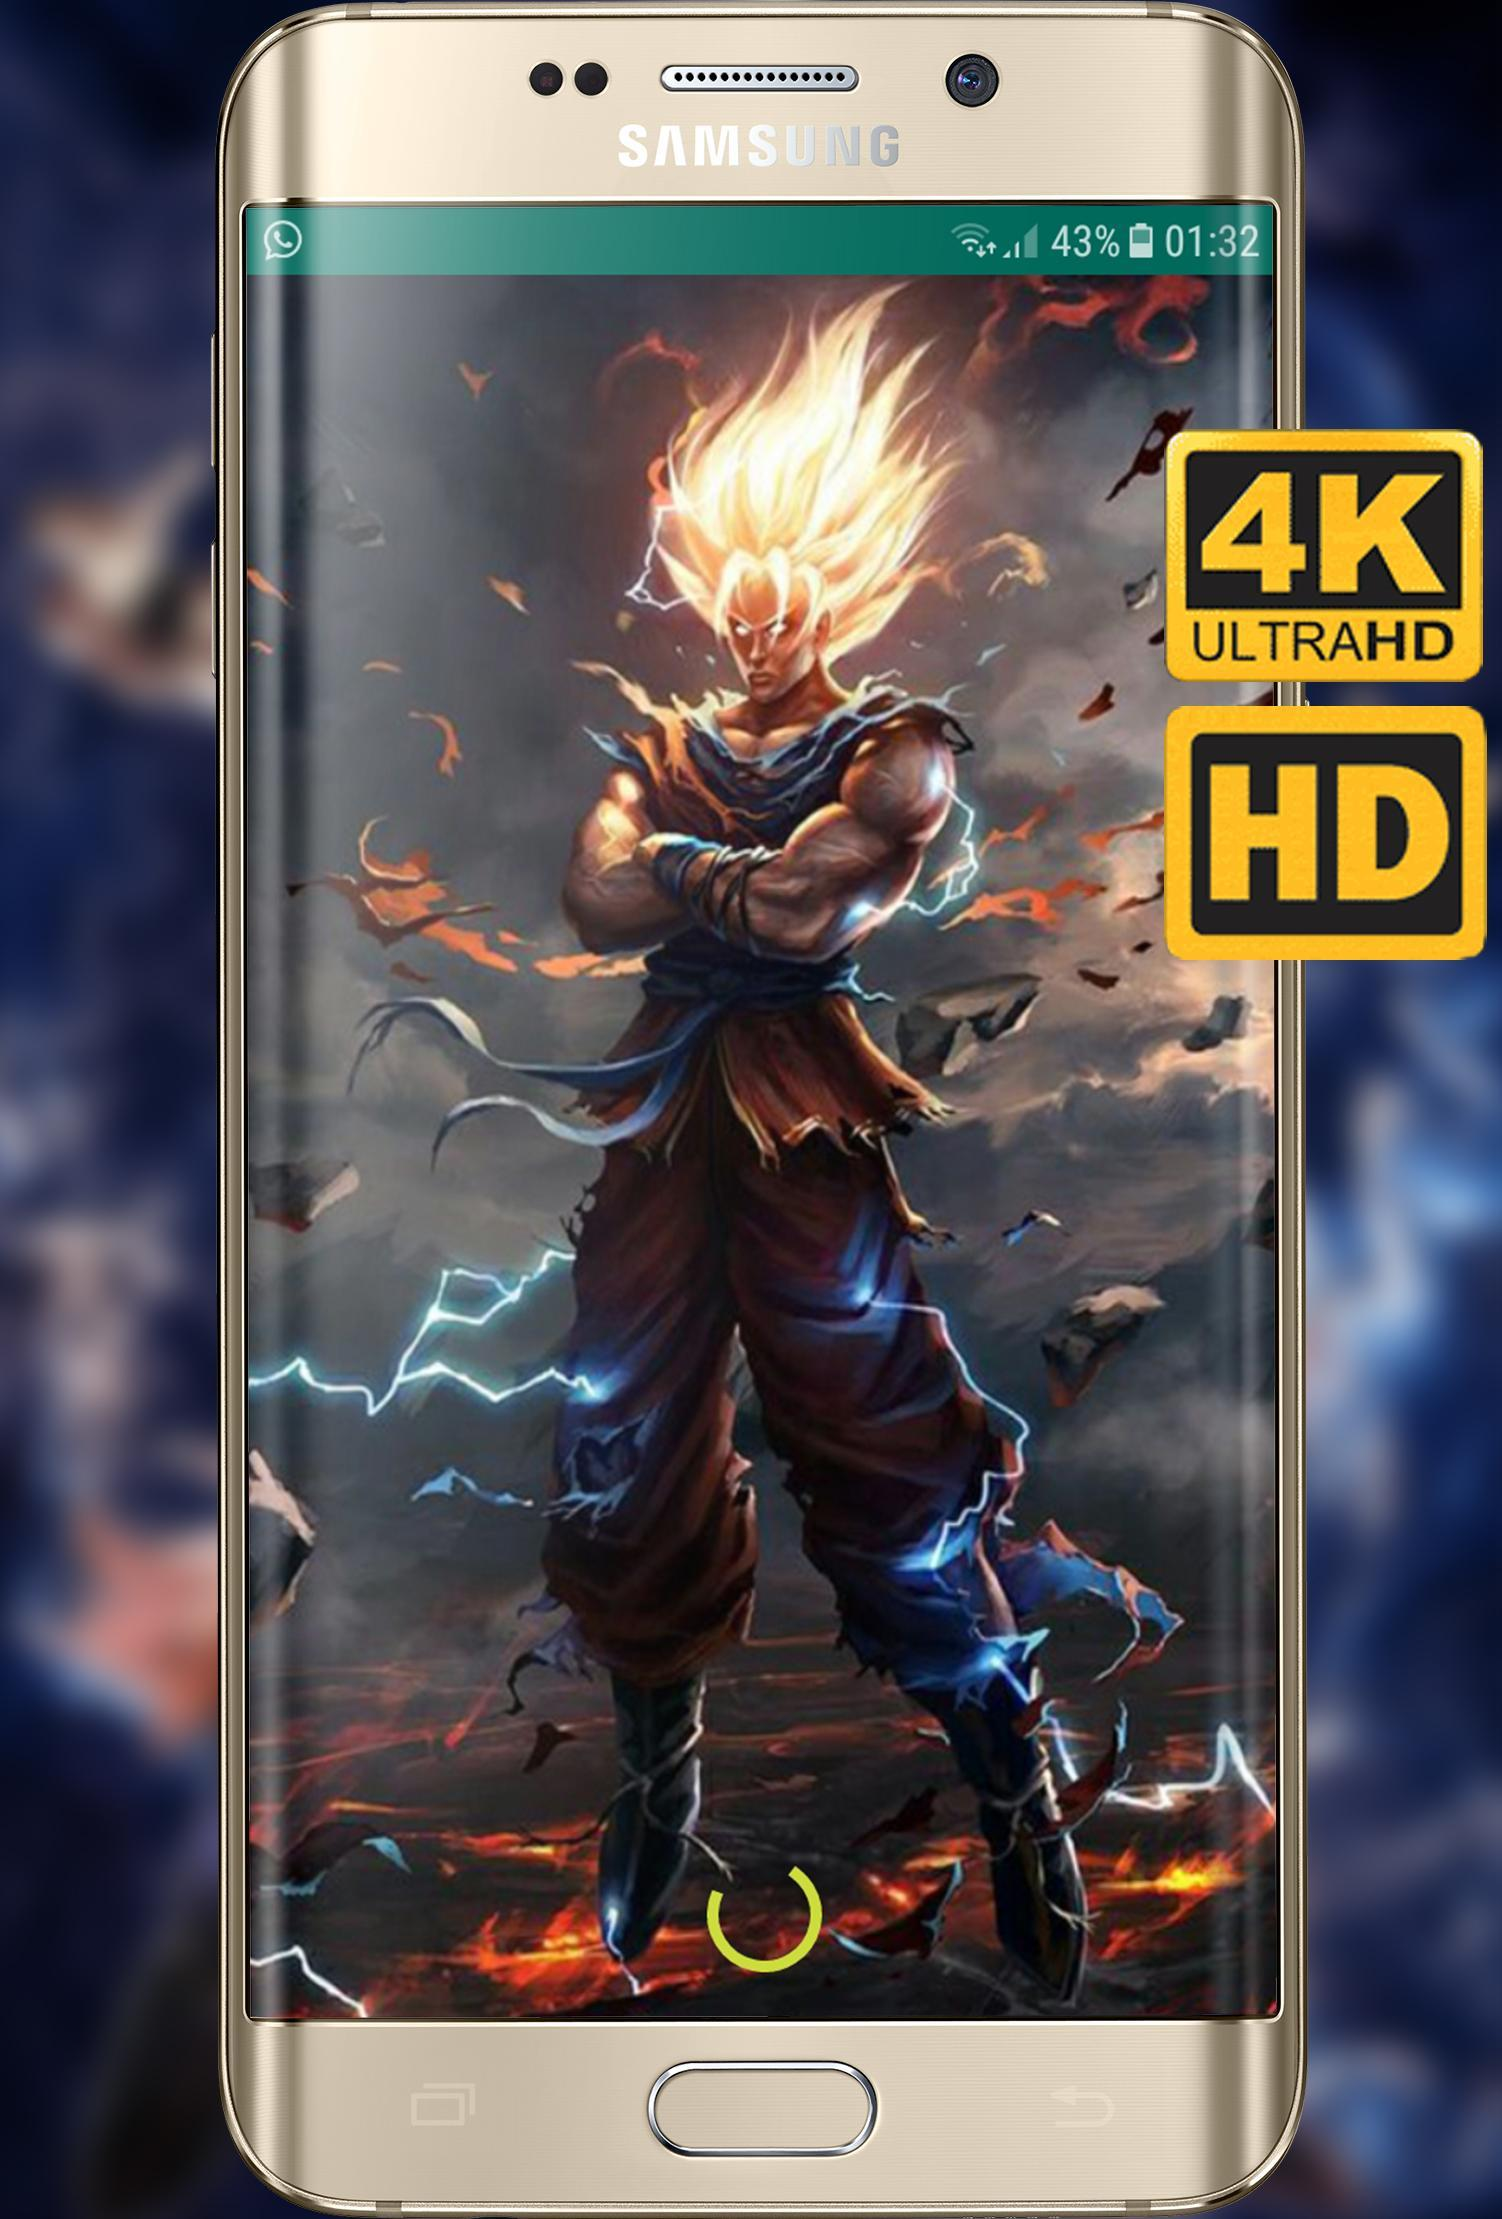 Dragon Ball Wallpapers Hd 4k For Android Apk Download